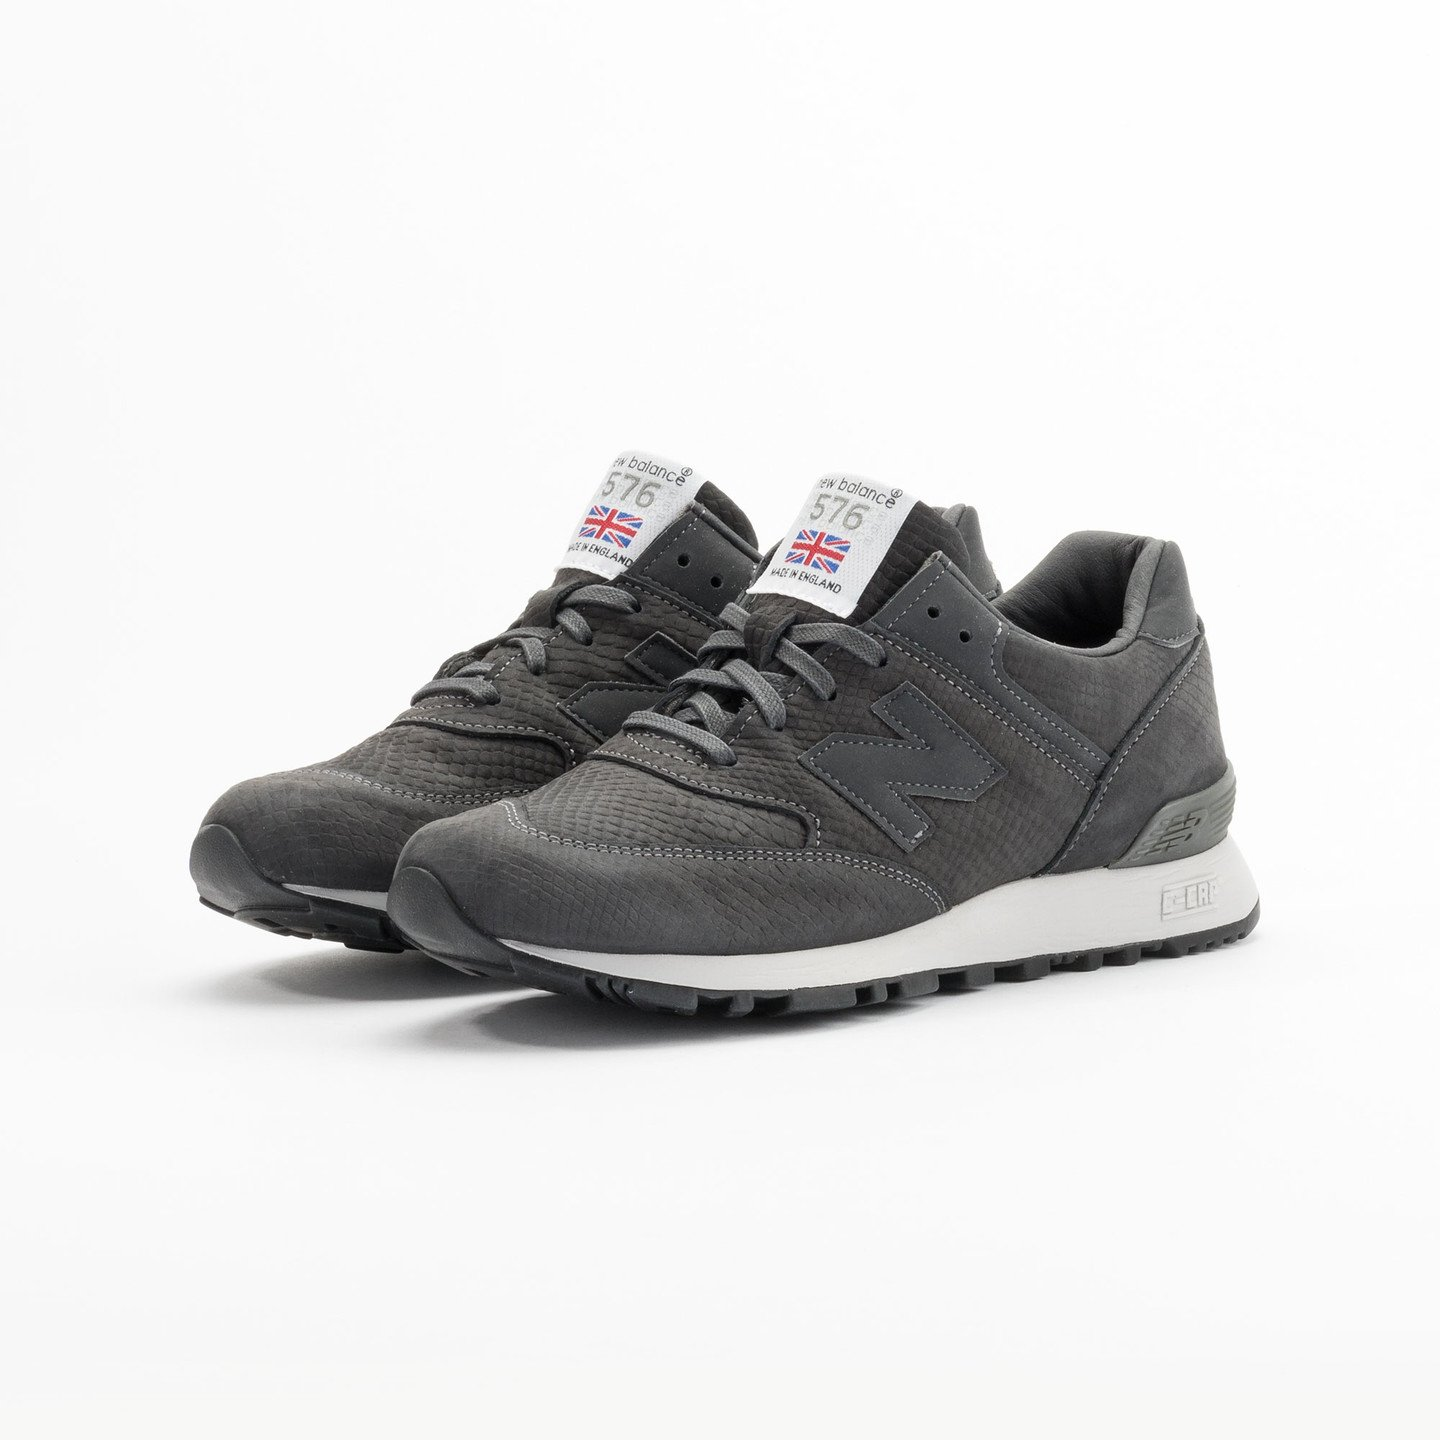 New Balance W576 NRG Made in England Dark Grey W576NRG-41